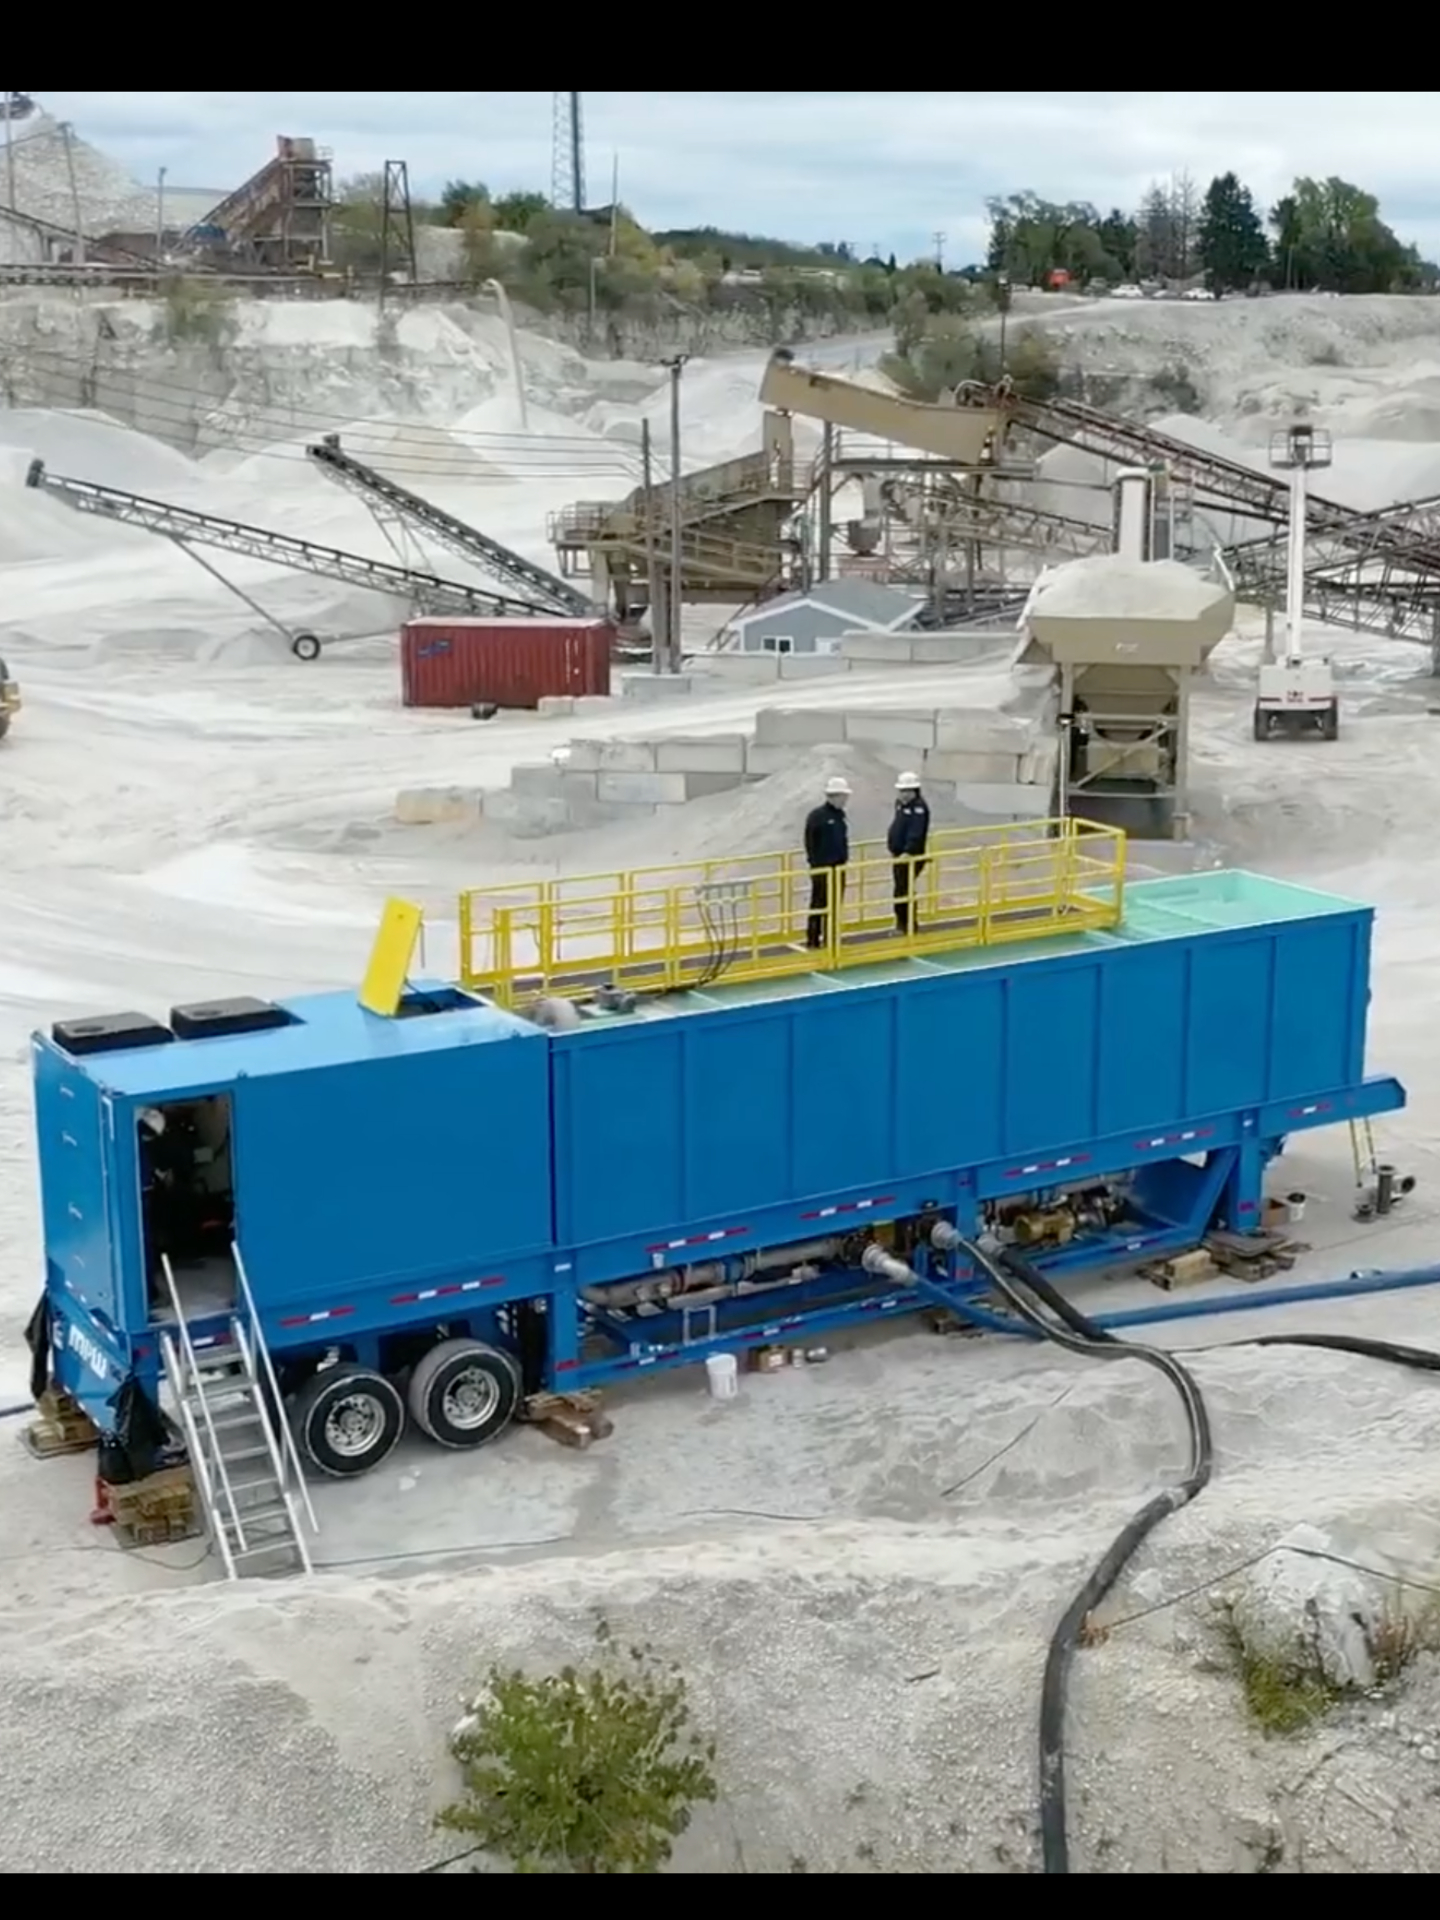 A rectangular portable industrial water clarifier setup at a quarry with two men standing on top of it.